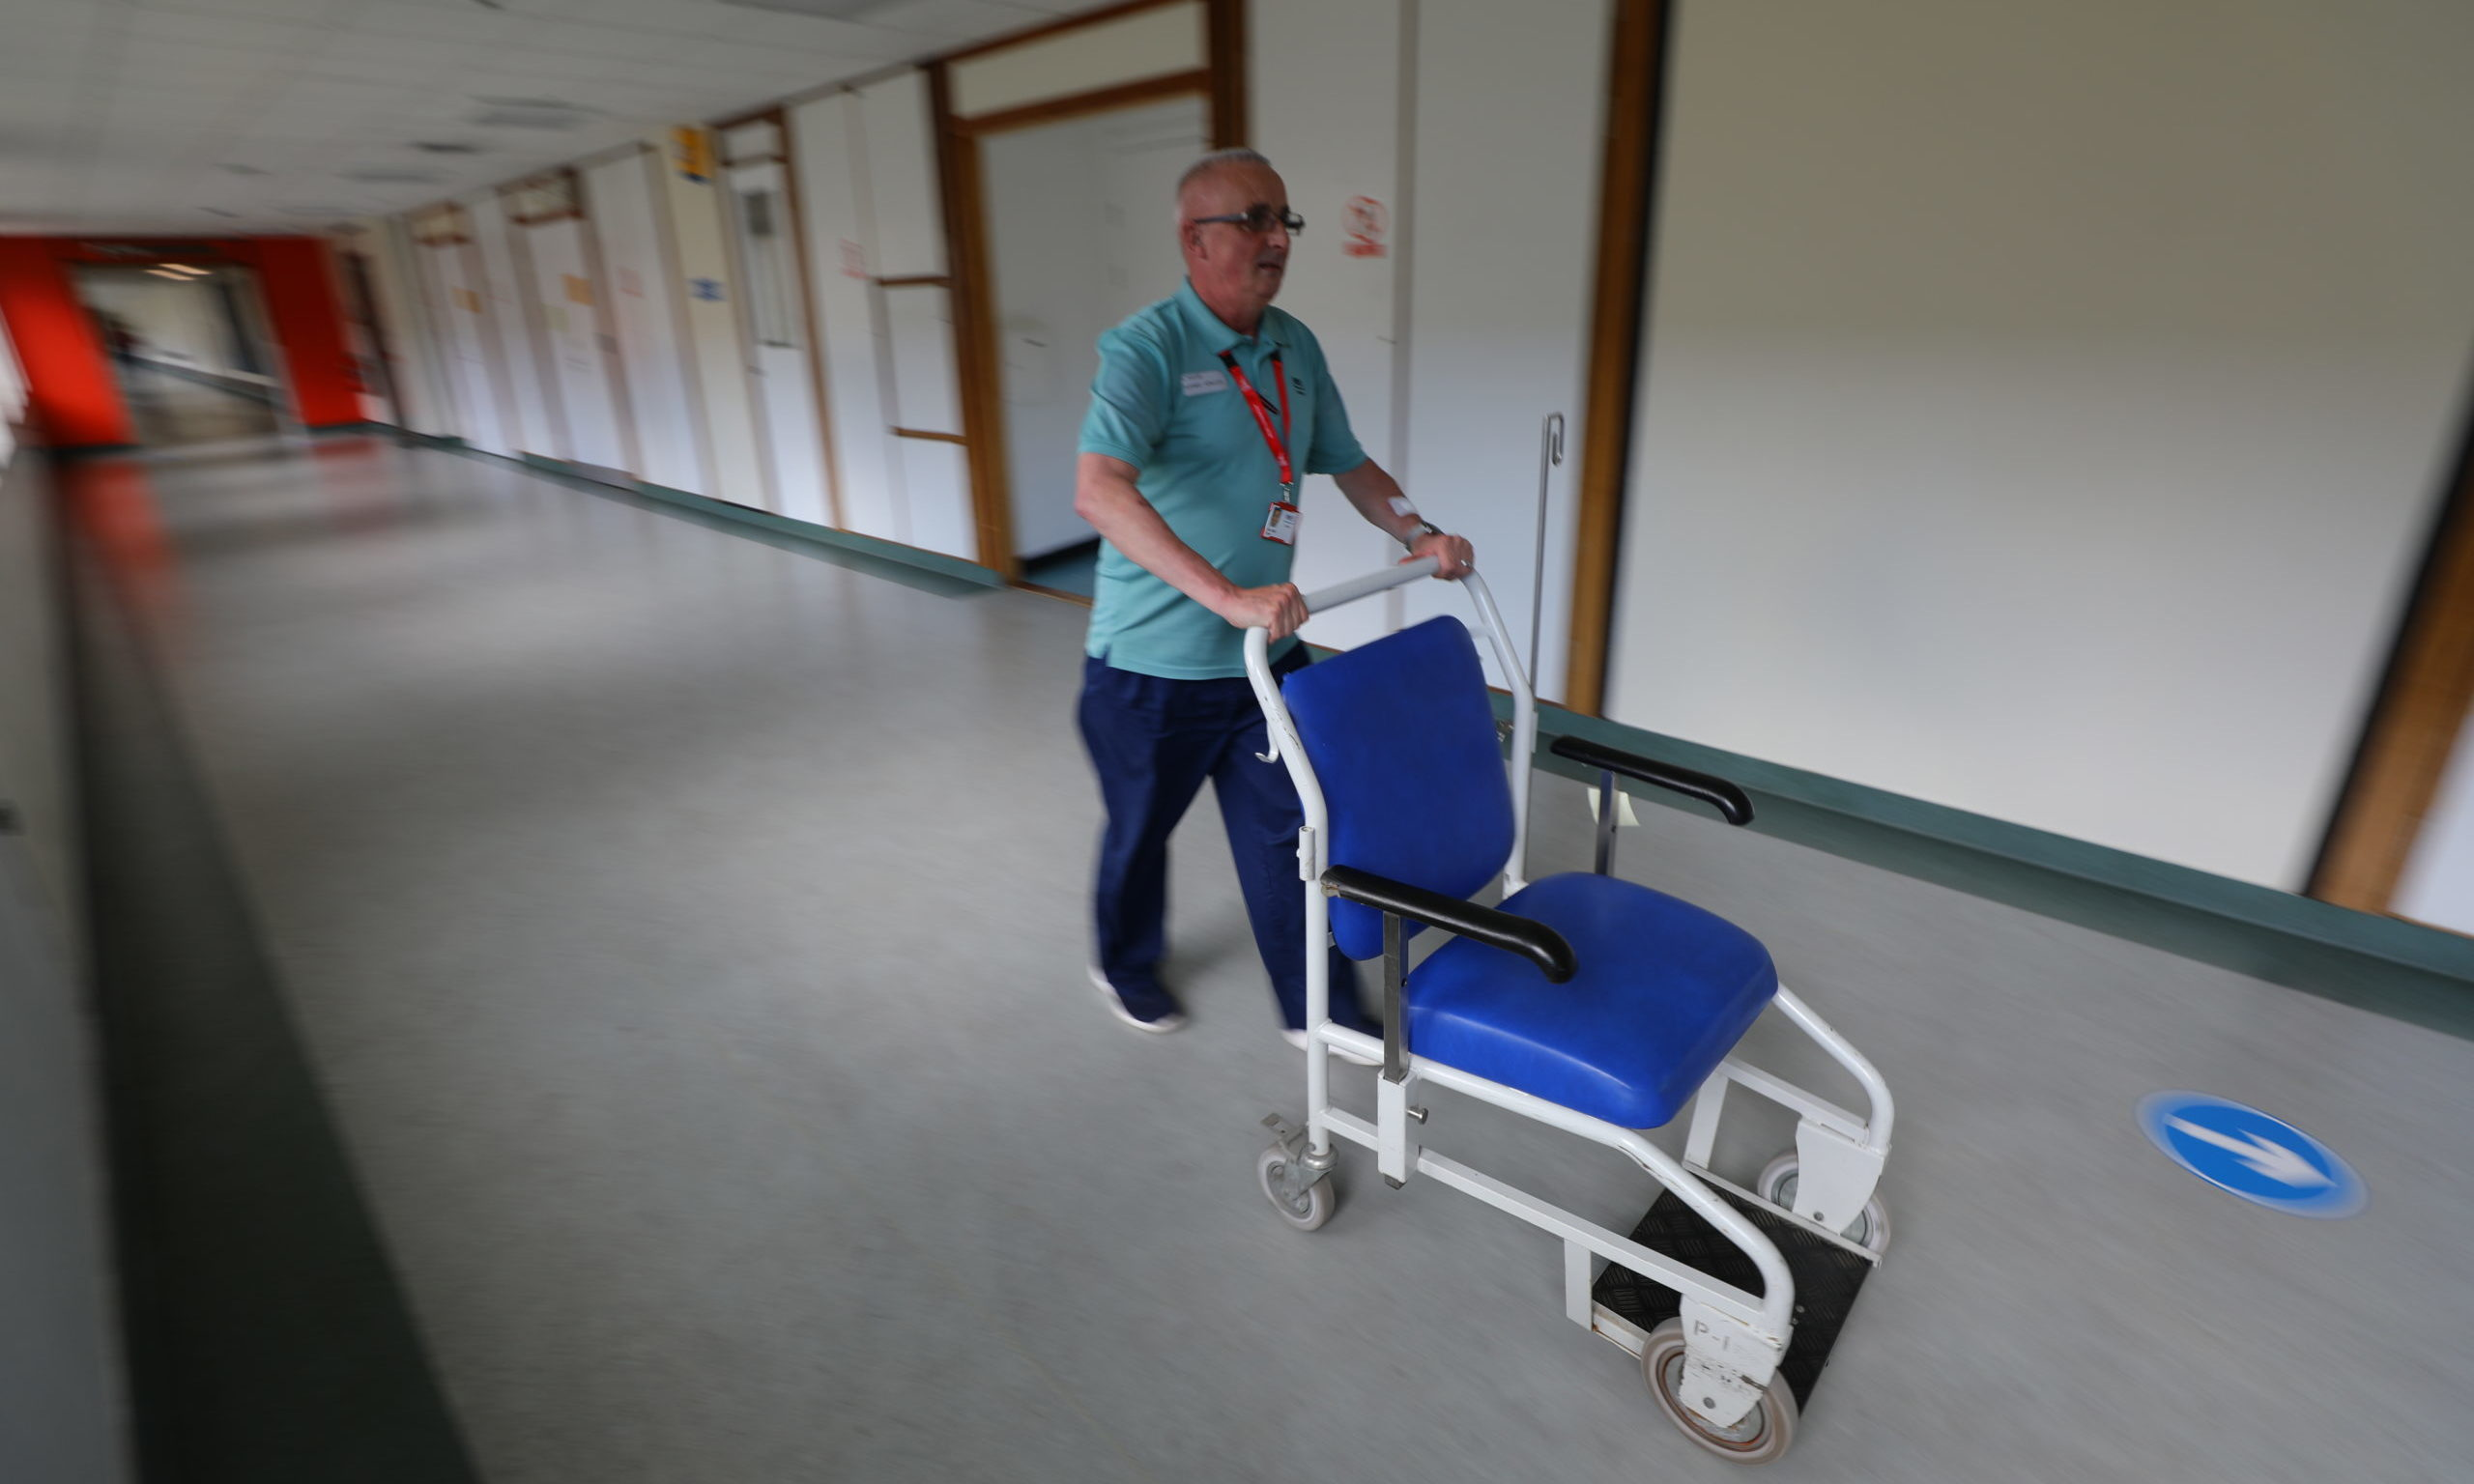 Gary Millar is one of the porters at Dundee's Ninewells Hospital.